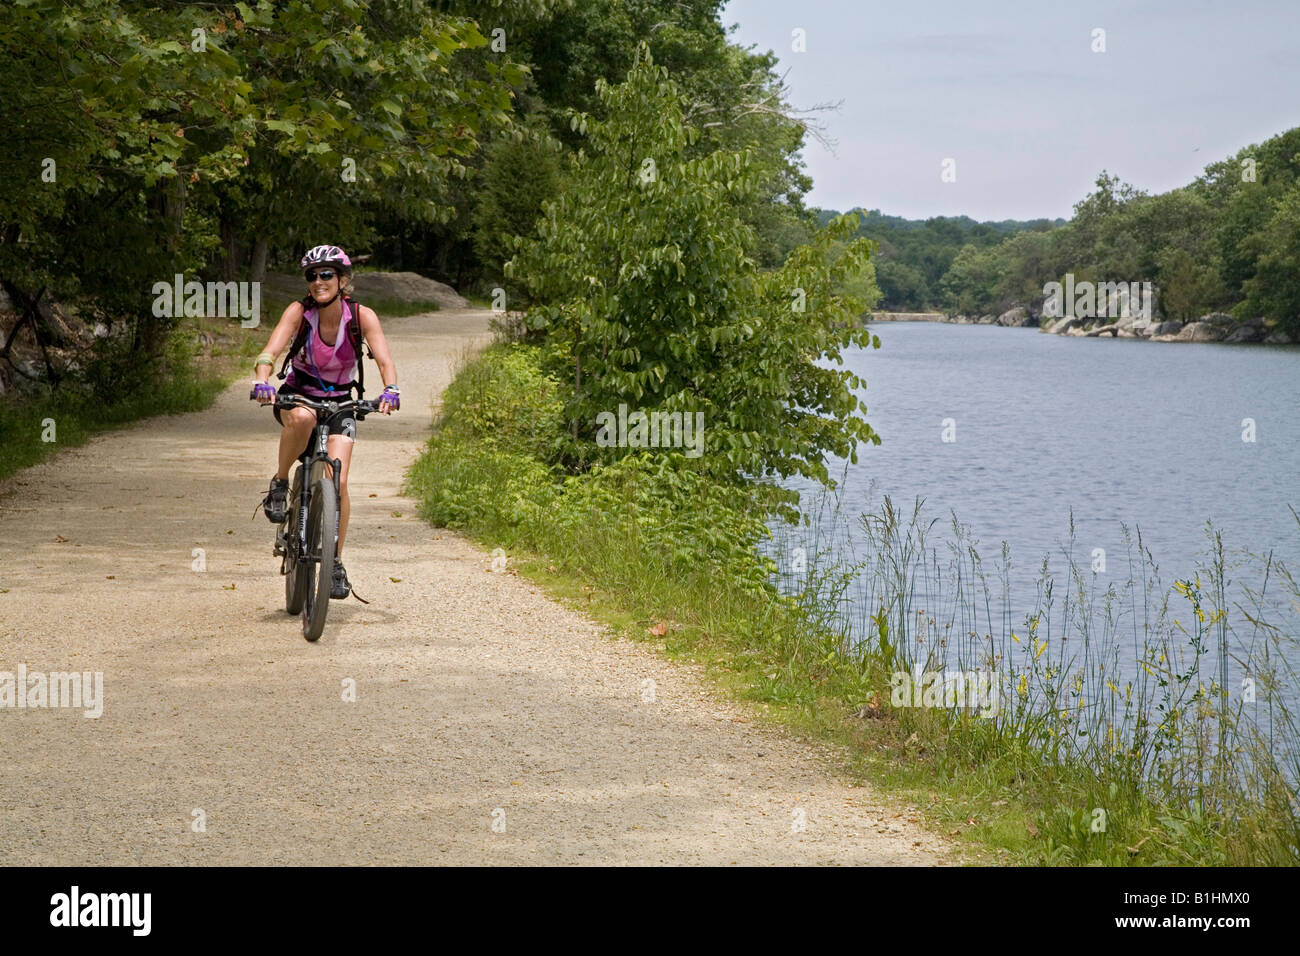 Bike Rider on the C and O Canal Towpath - Stock Image